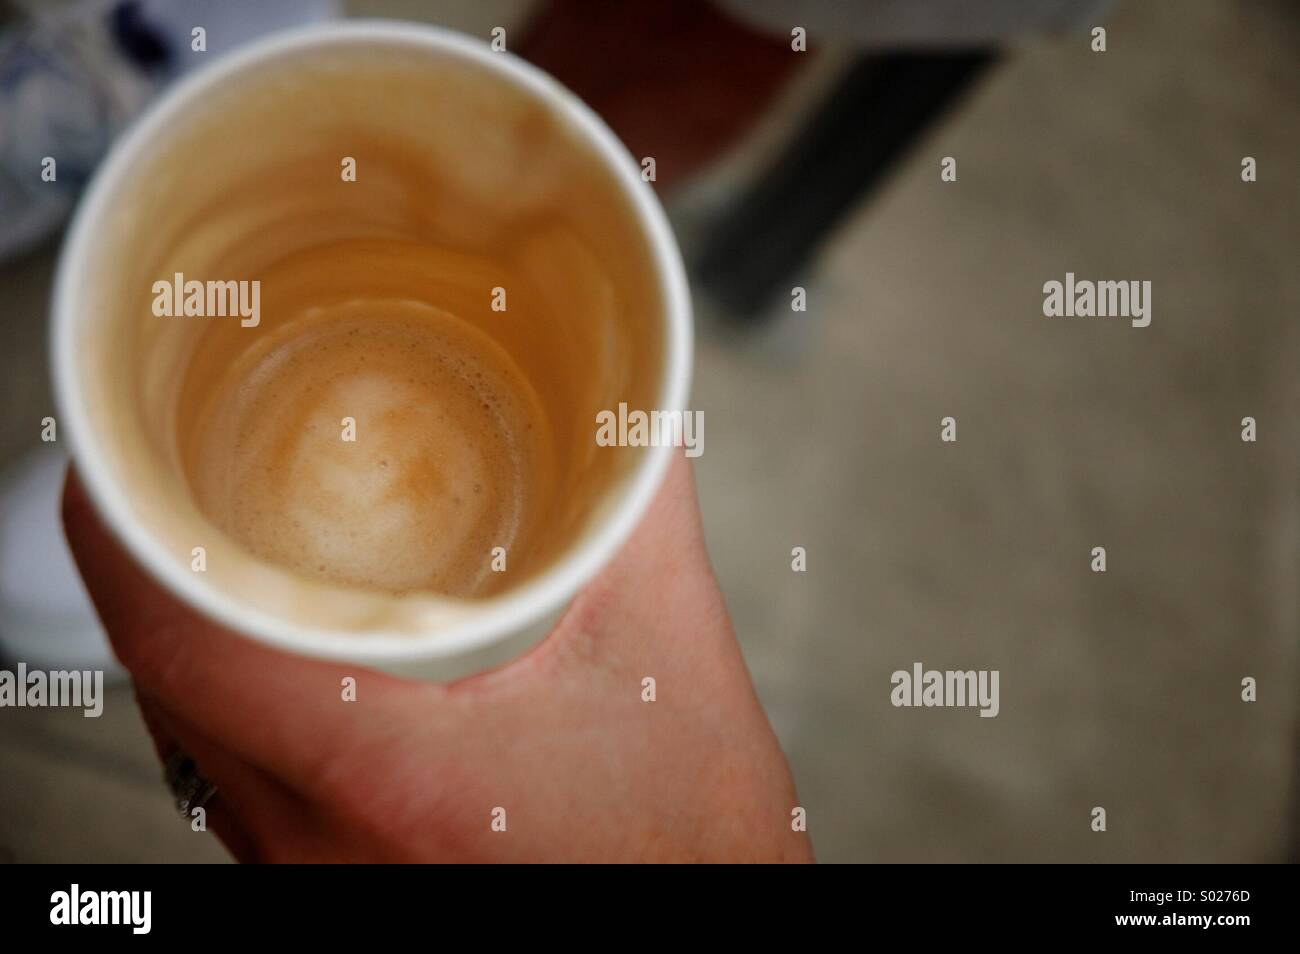 Empty coffee cup with residual foam Stock Photo